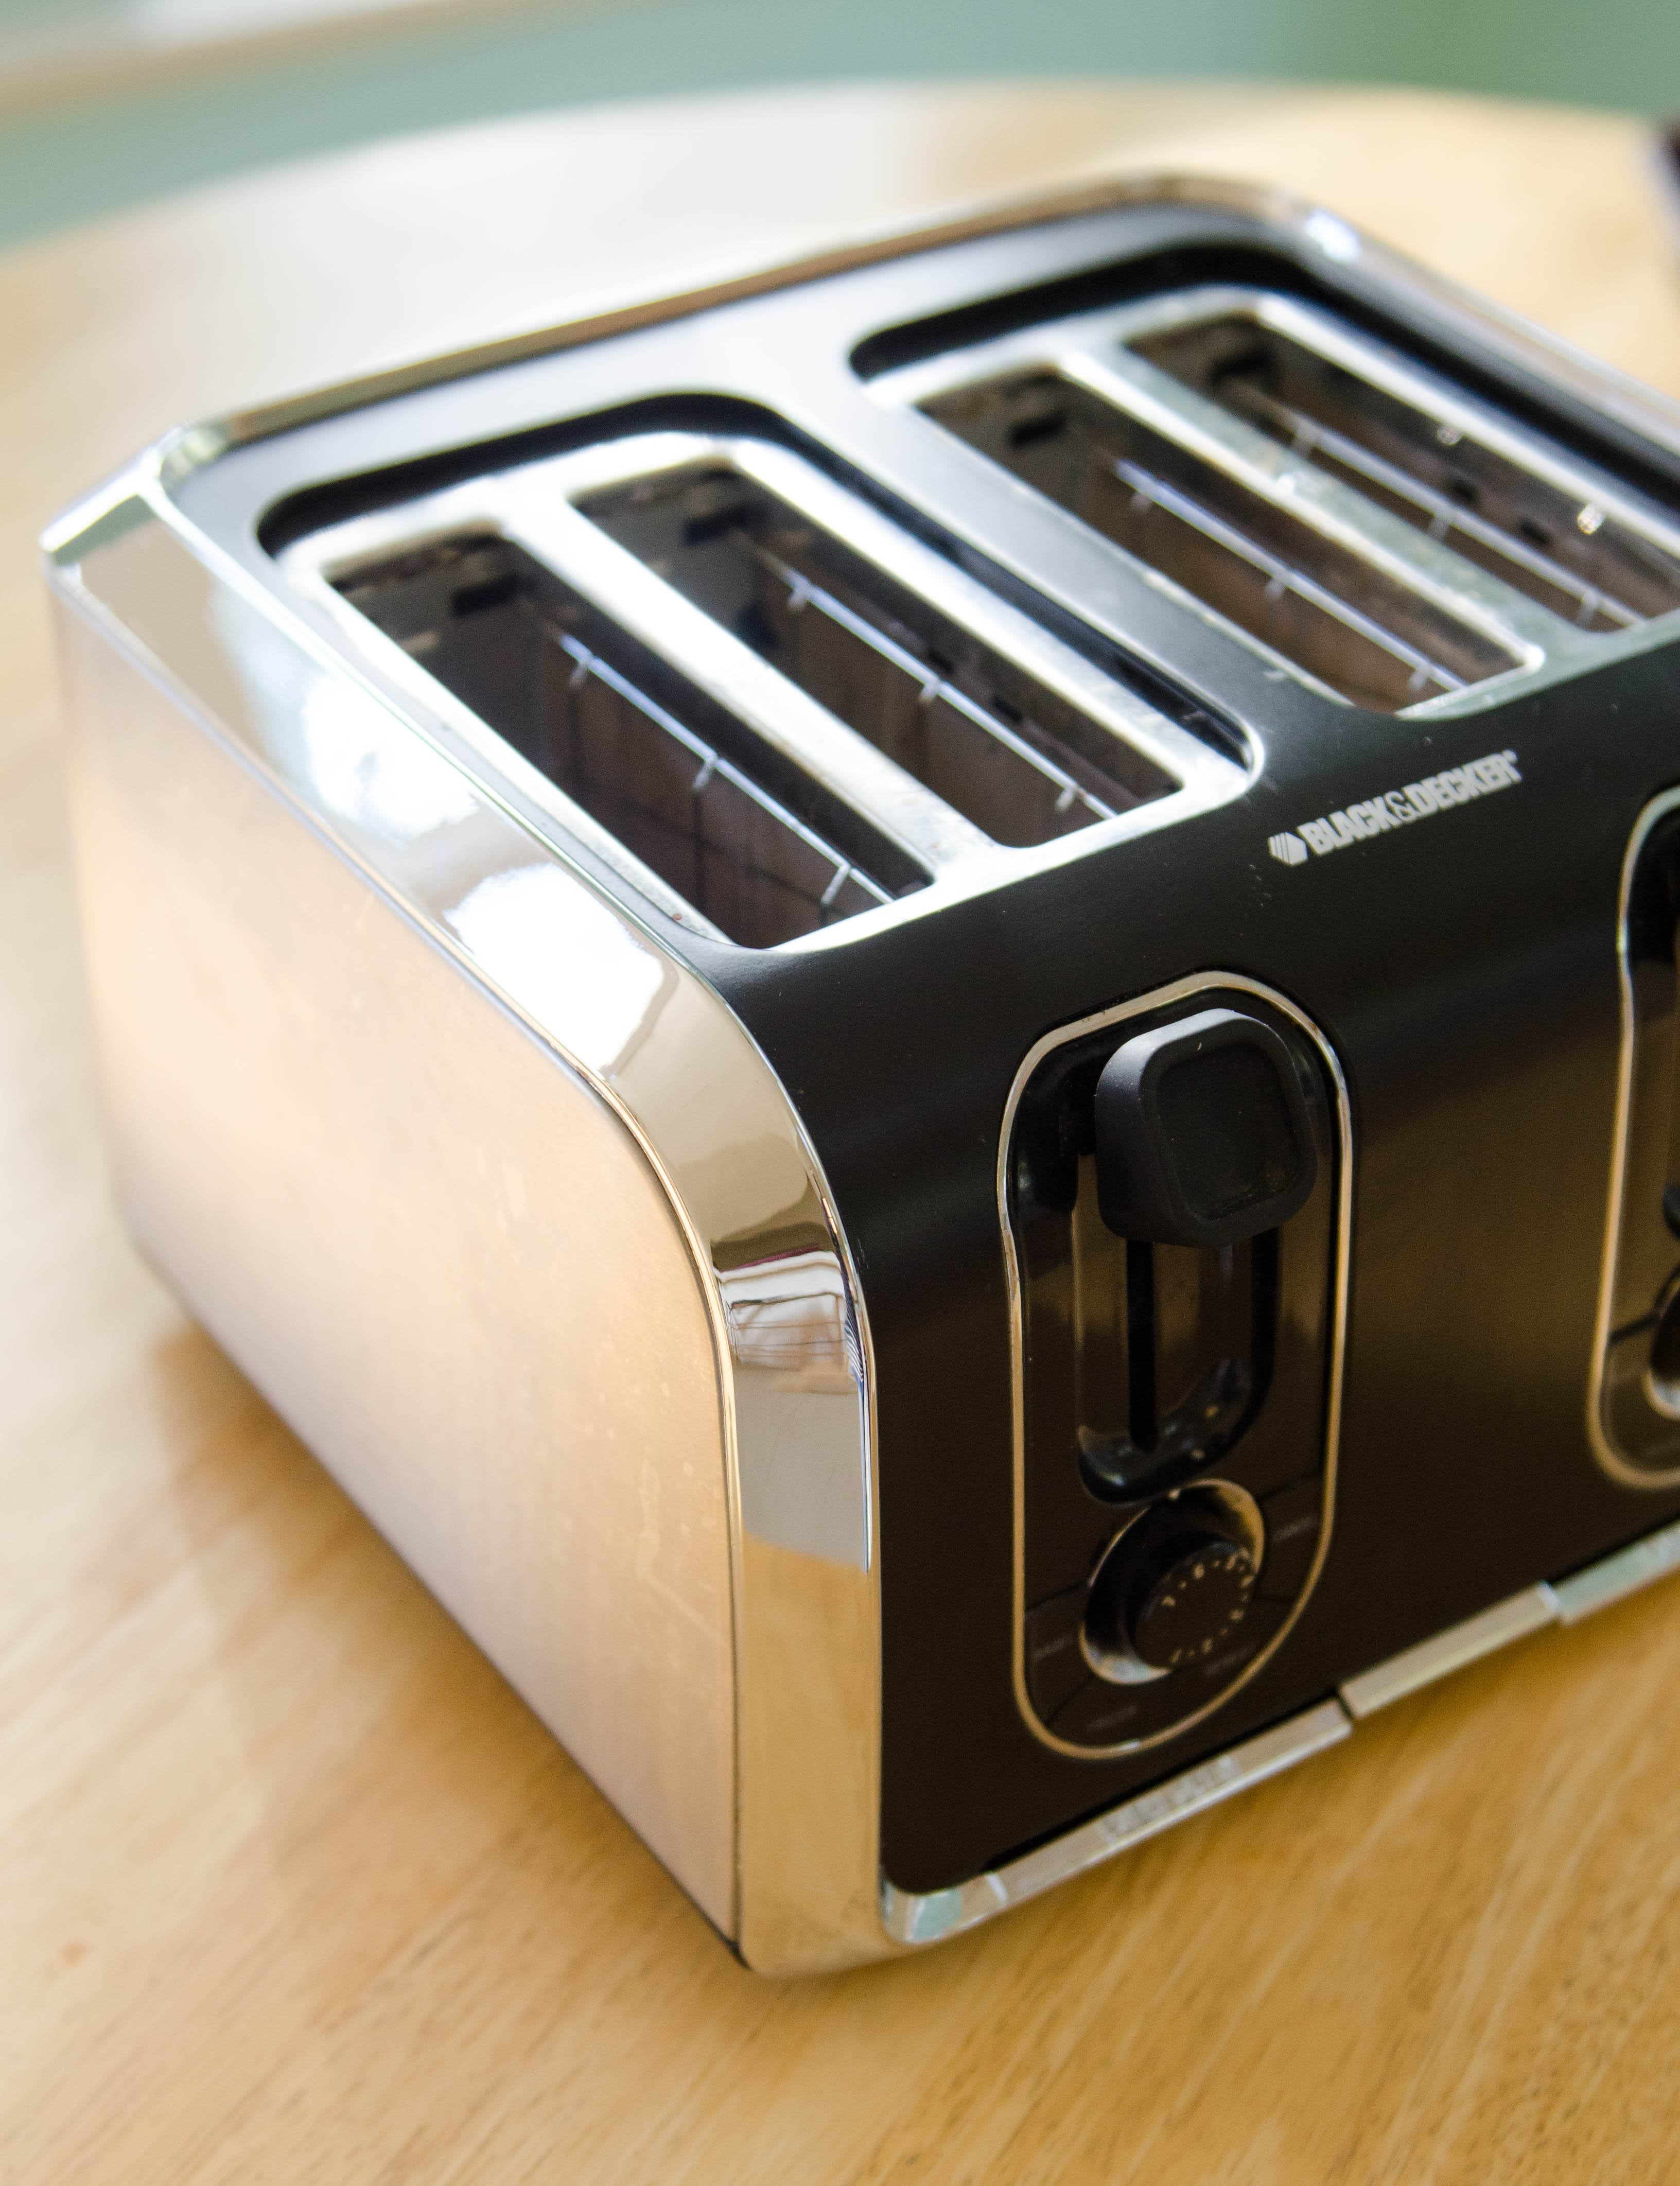 The Kitchn's Guide to Cleaning Your Small Electric Appliances: gallery image 1